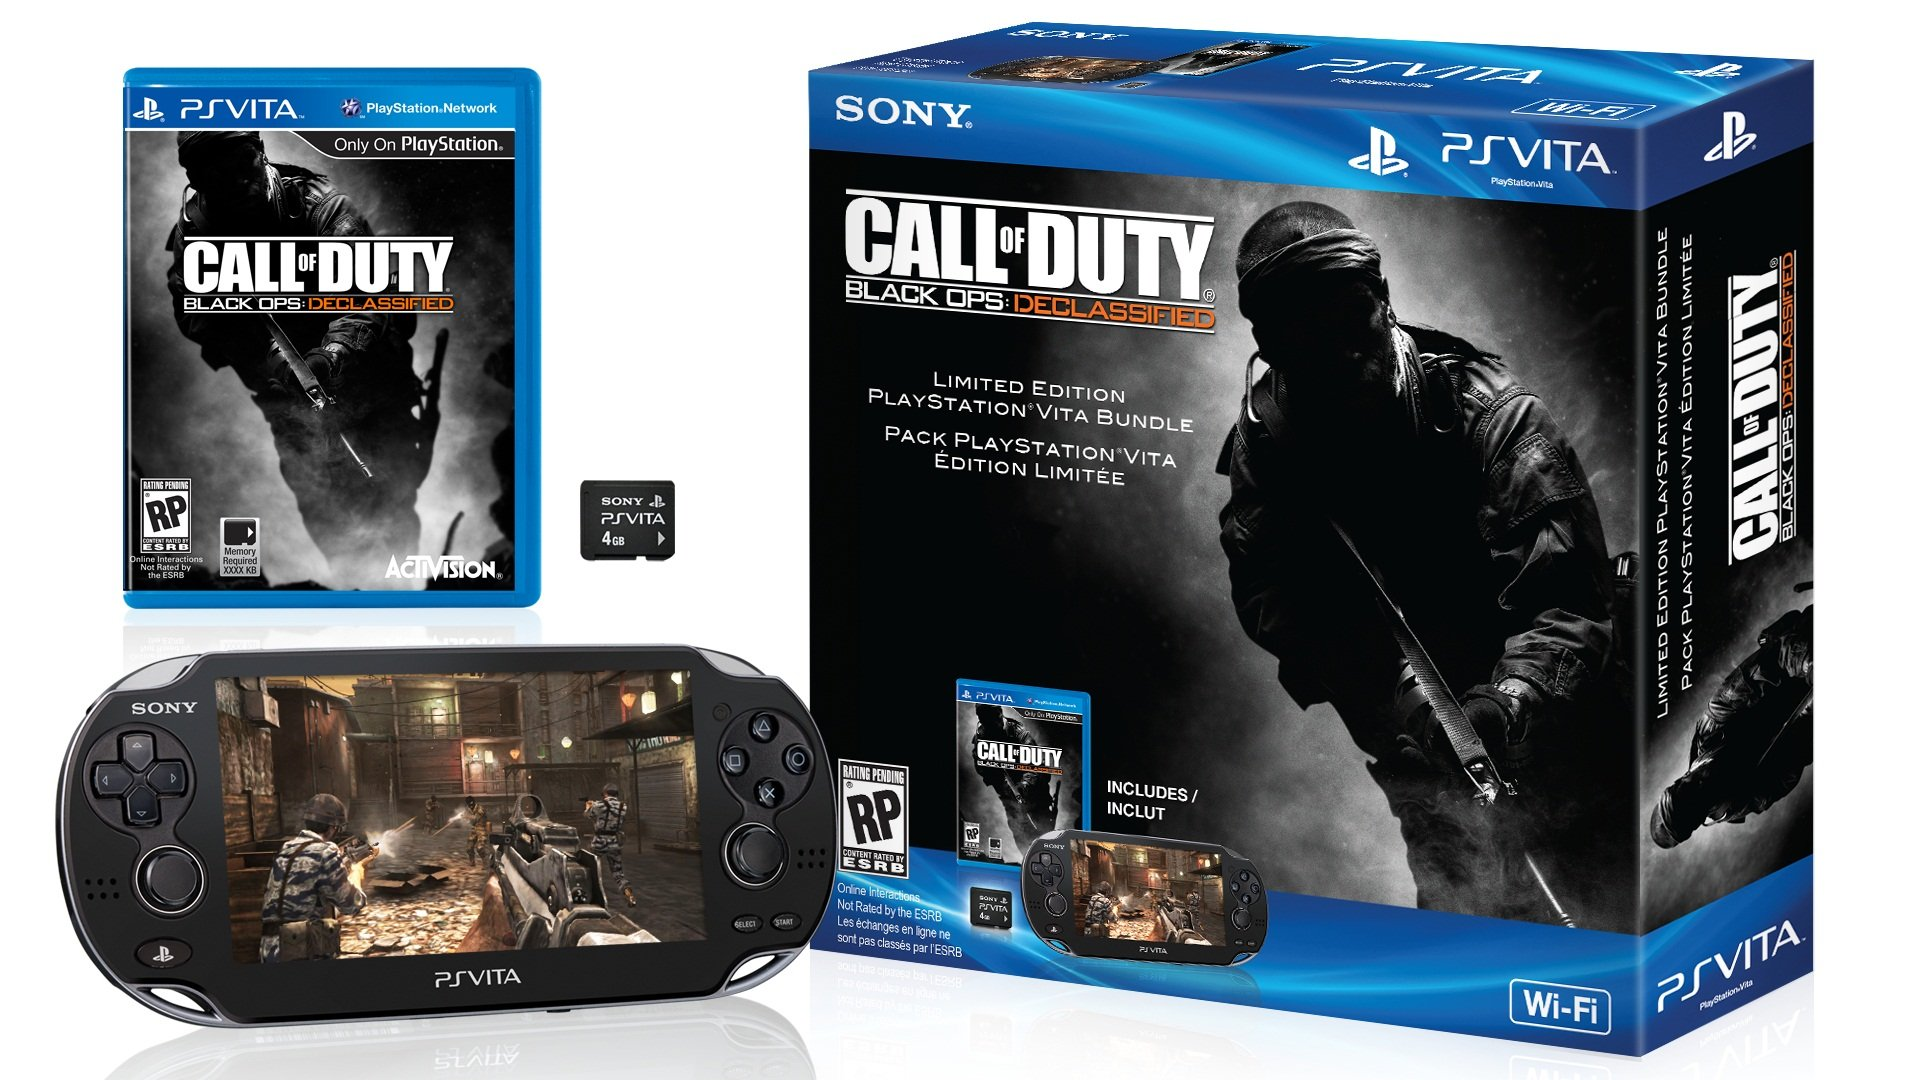 Sony PlayStation Vita Call of Duty Black Ops Declassified Bundle Pack